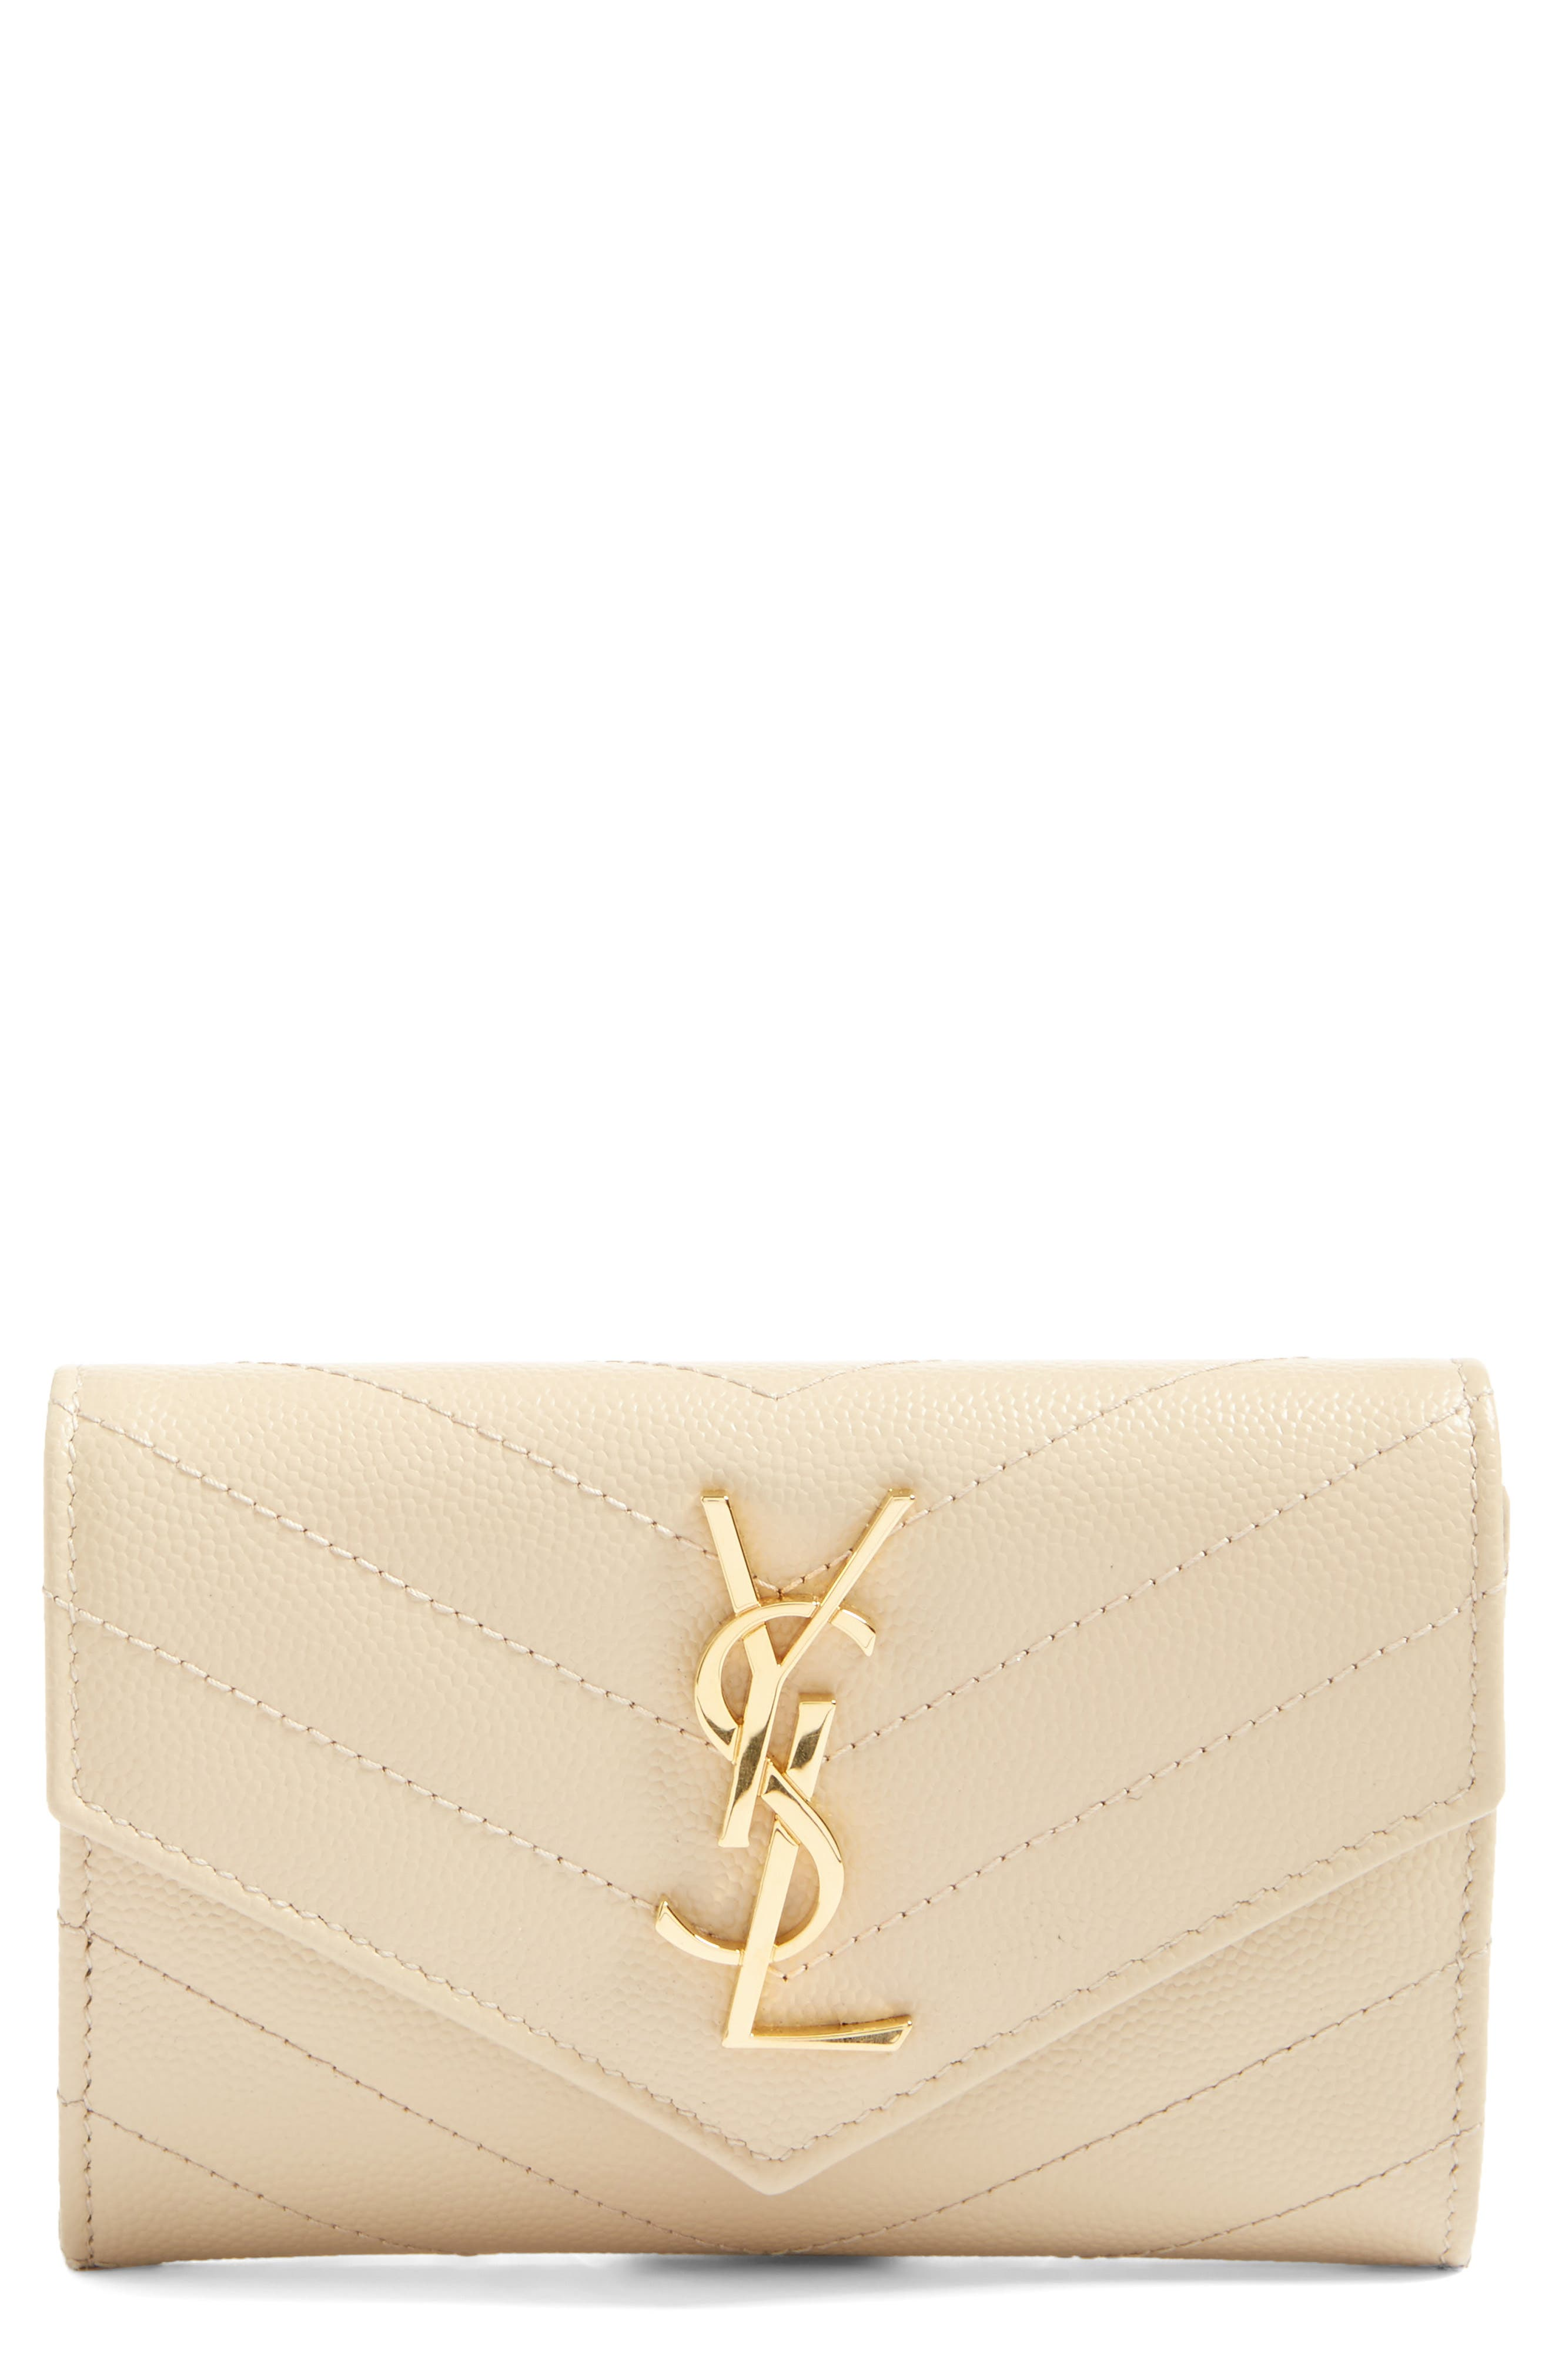 Main Image - Saint Laurent 'Monogram' Quilted Leather French Wallet